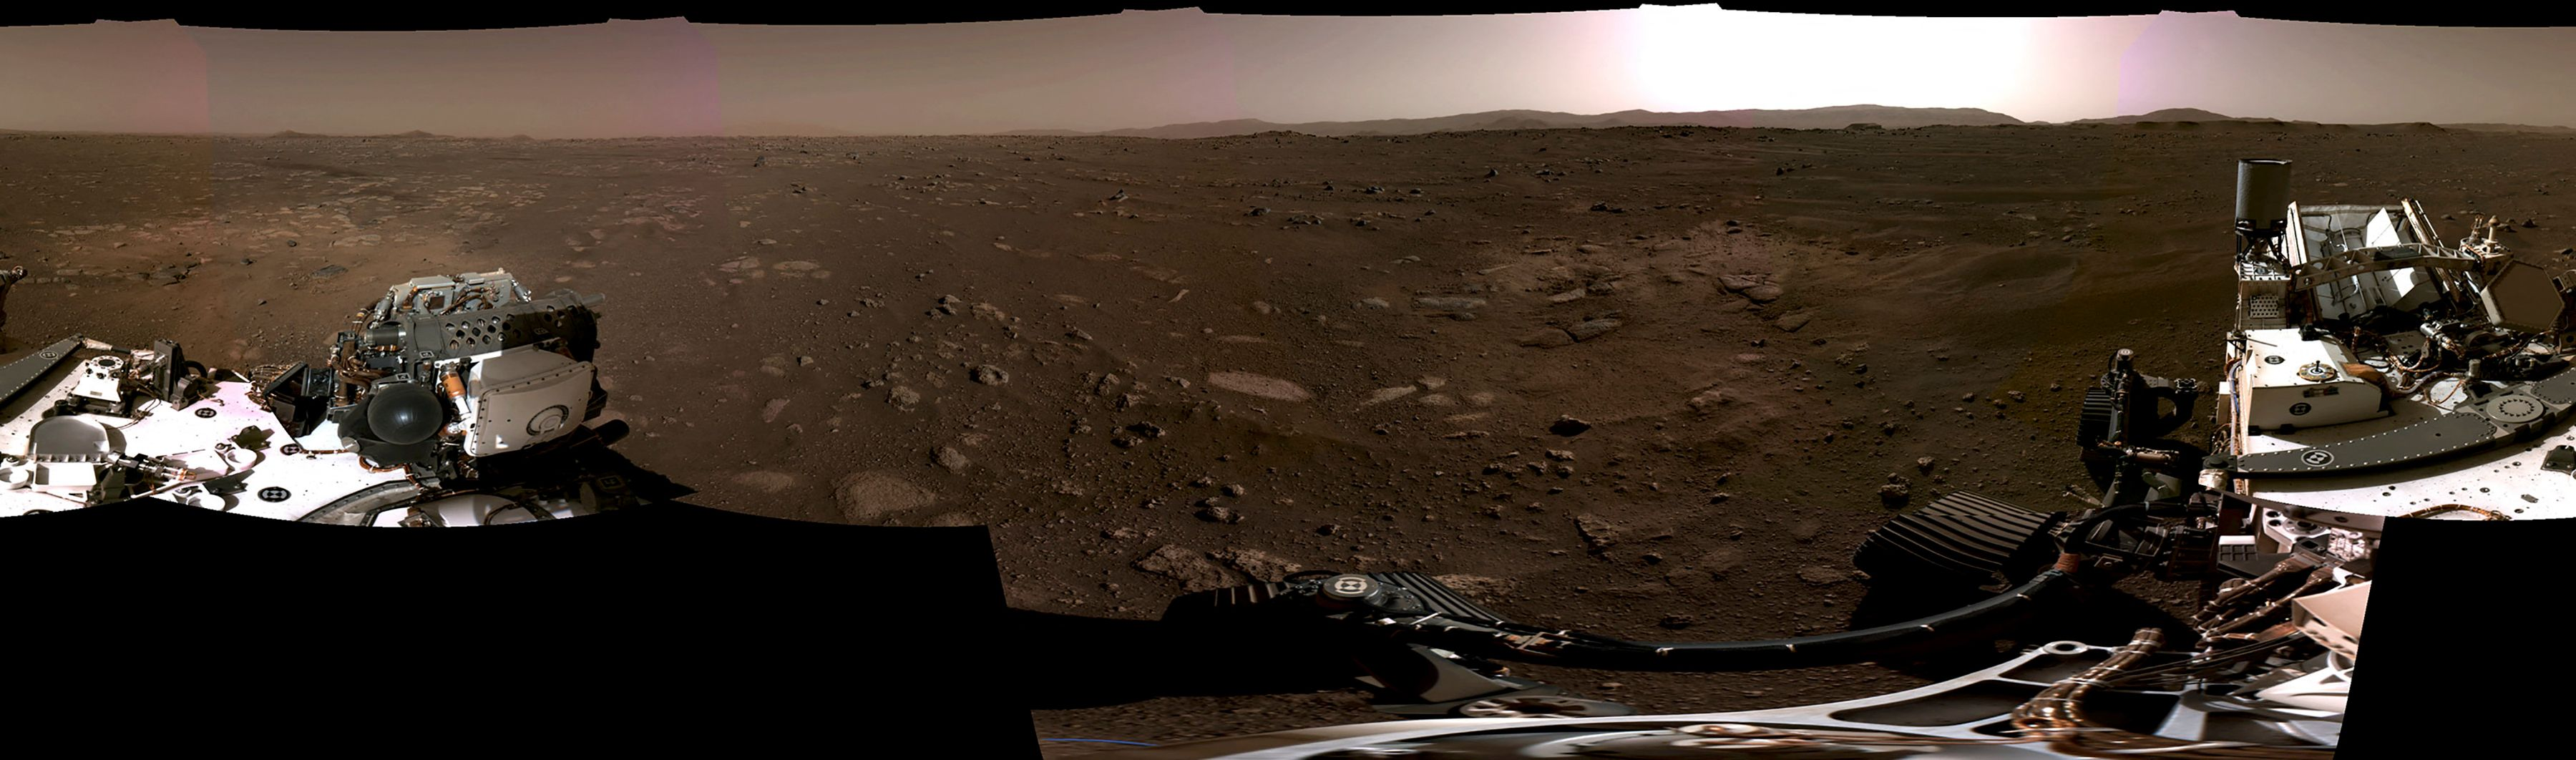 A panorama view of Mars' surface taken by the Red Plant rover